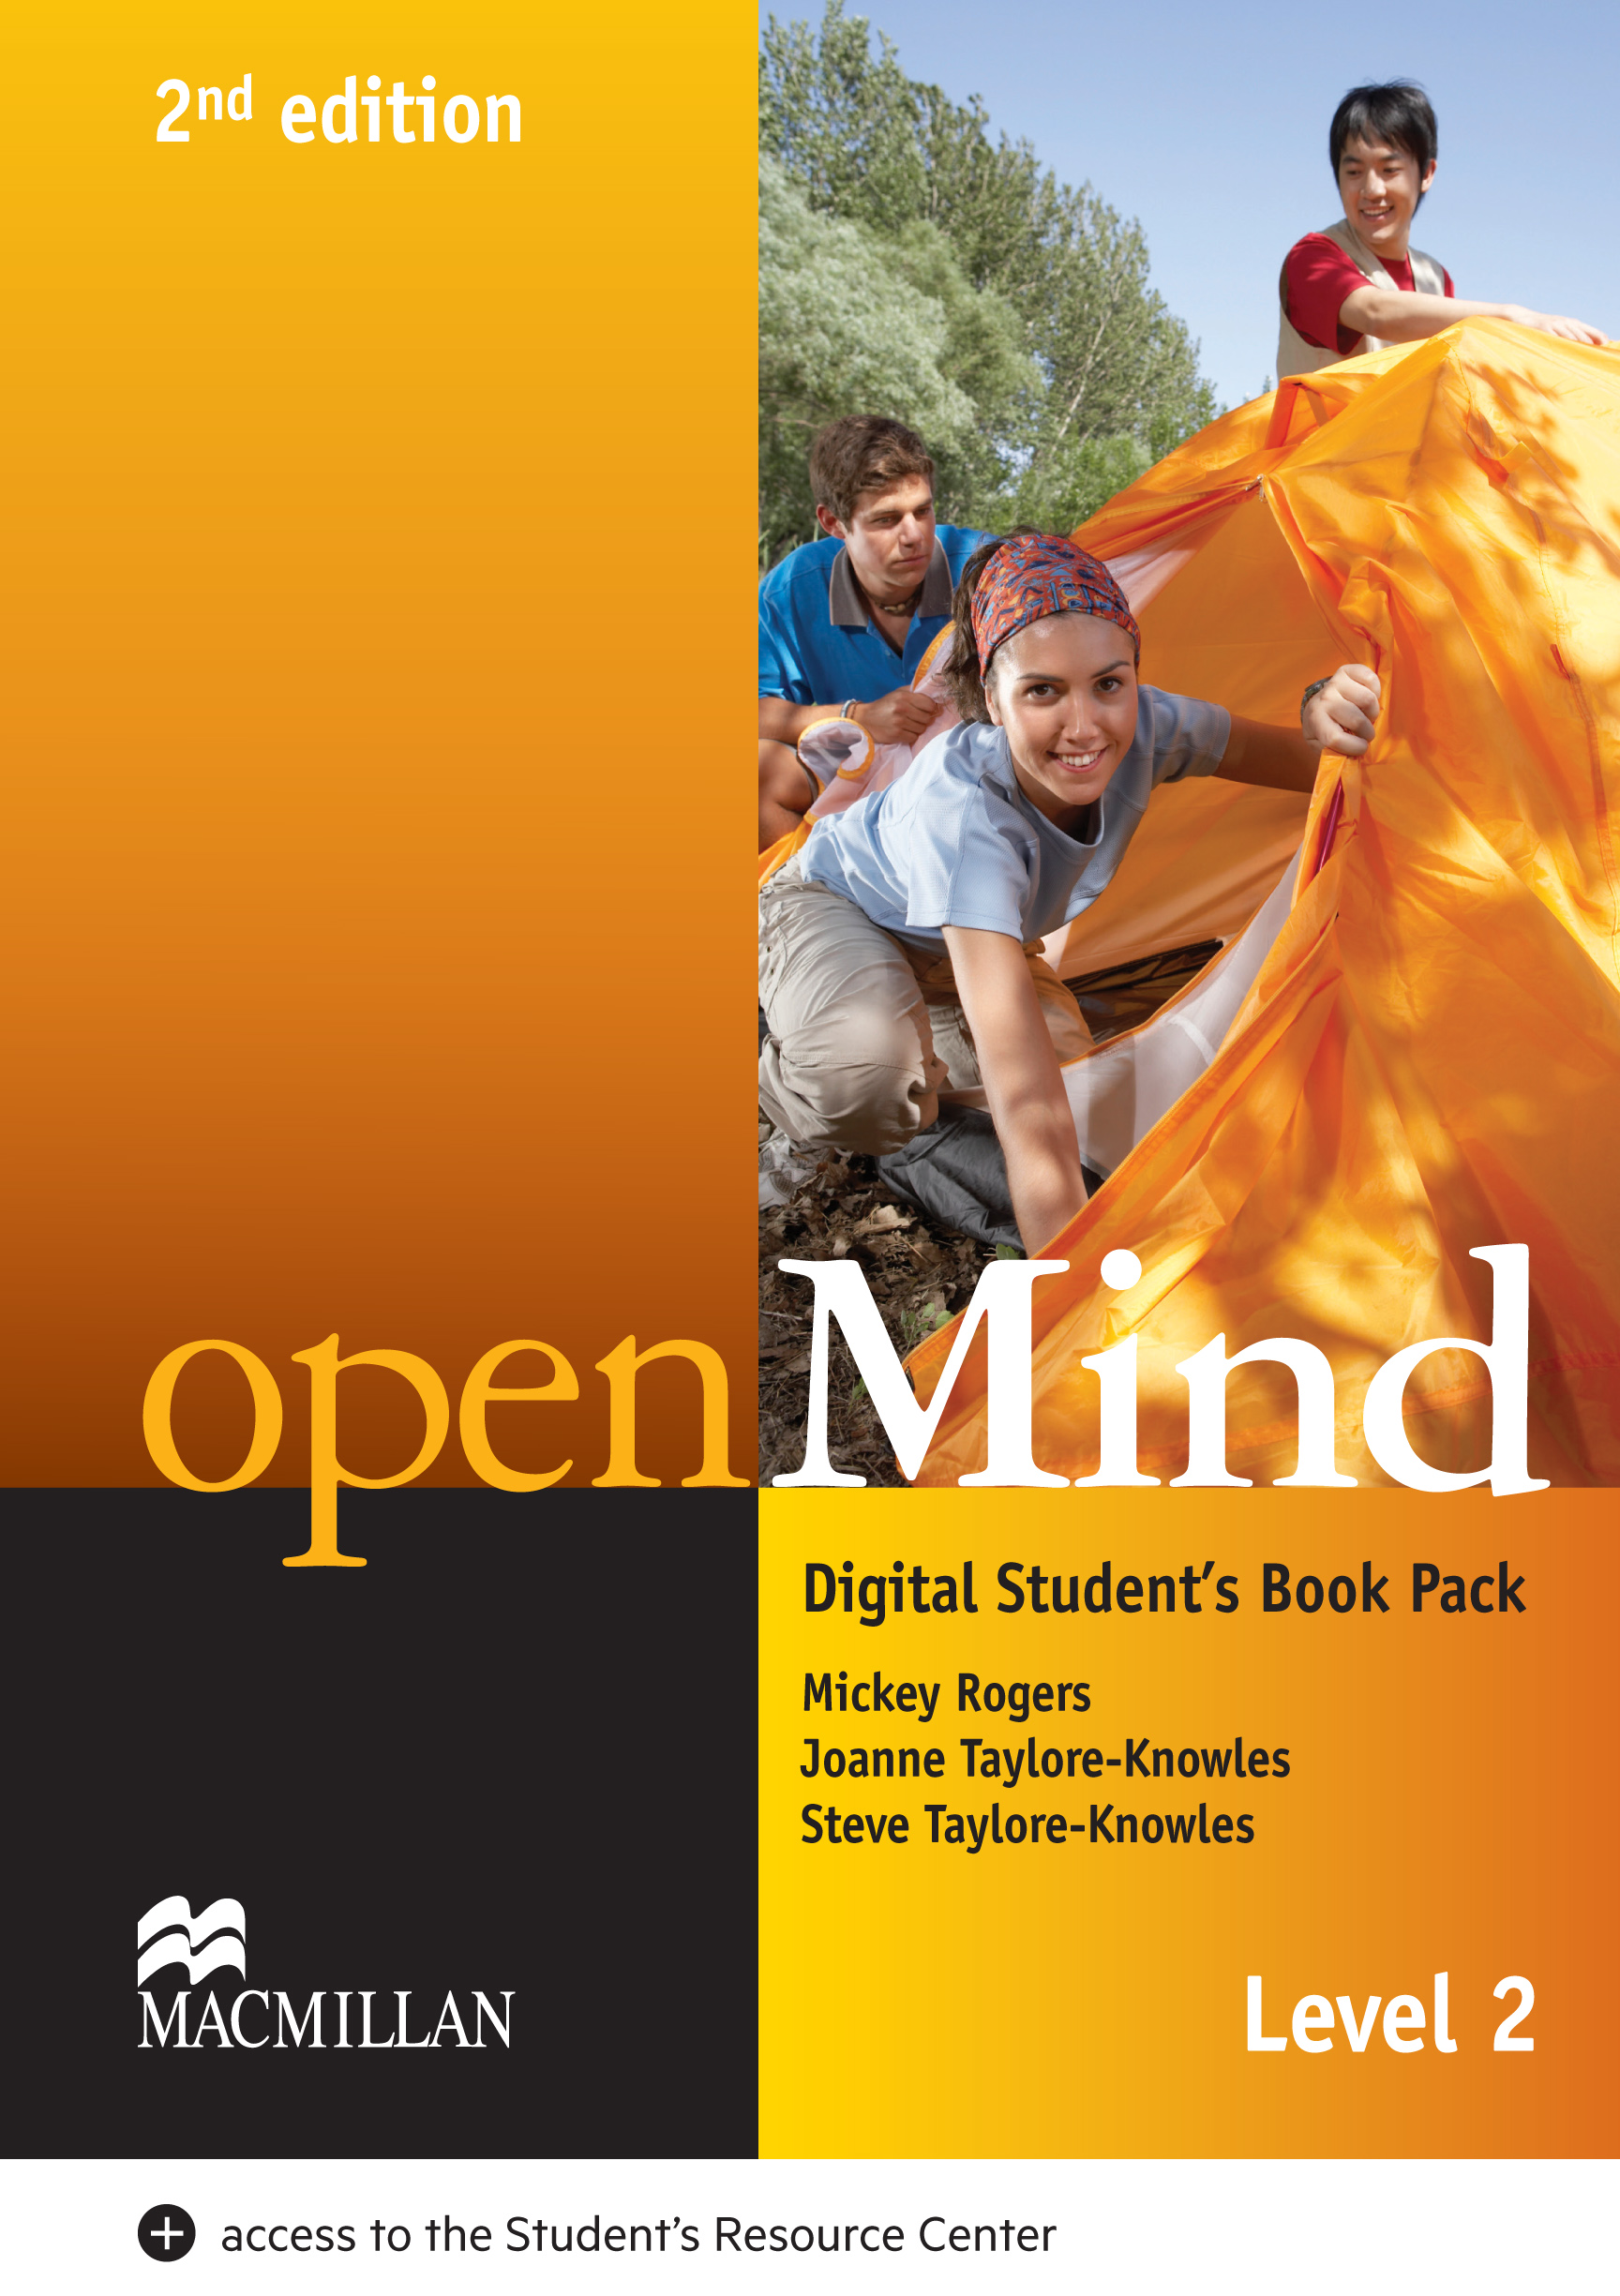 openMind 2nd Edition Level 2 Digital Student